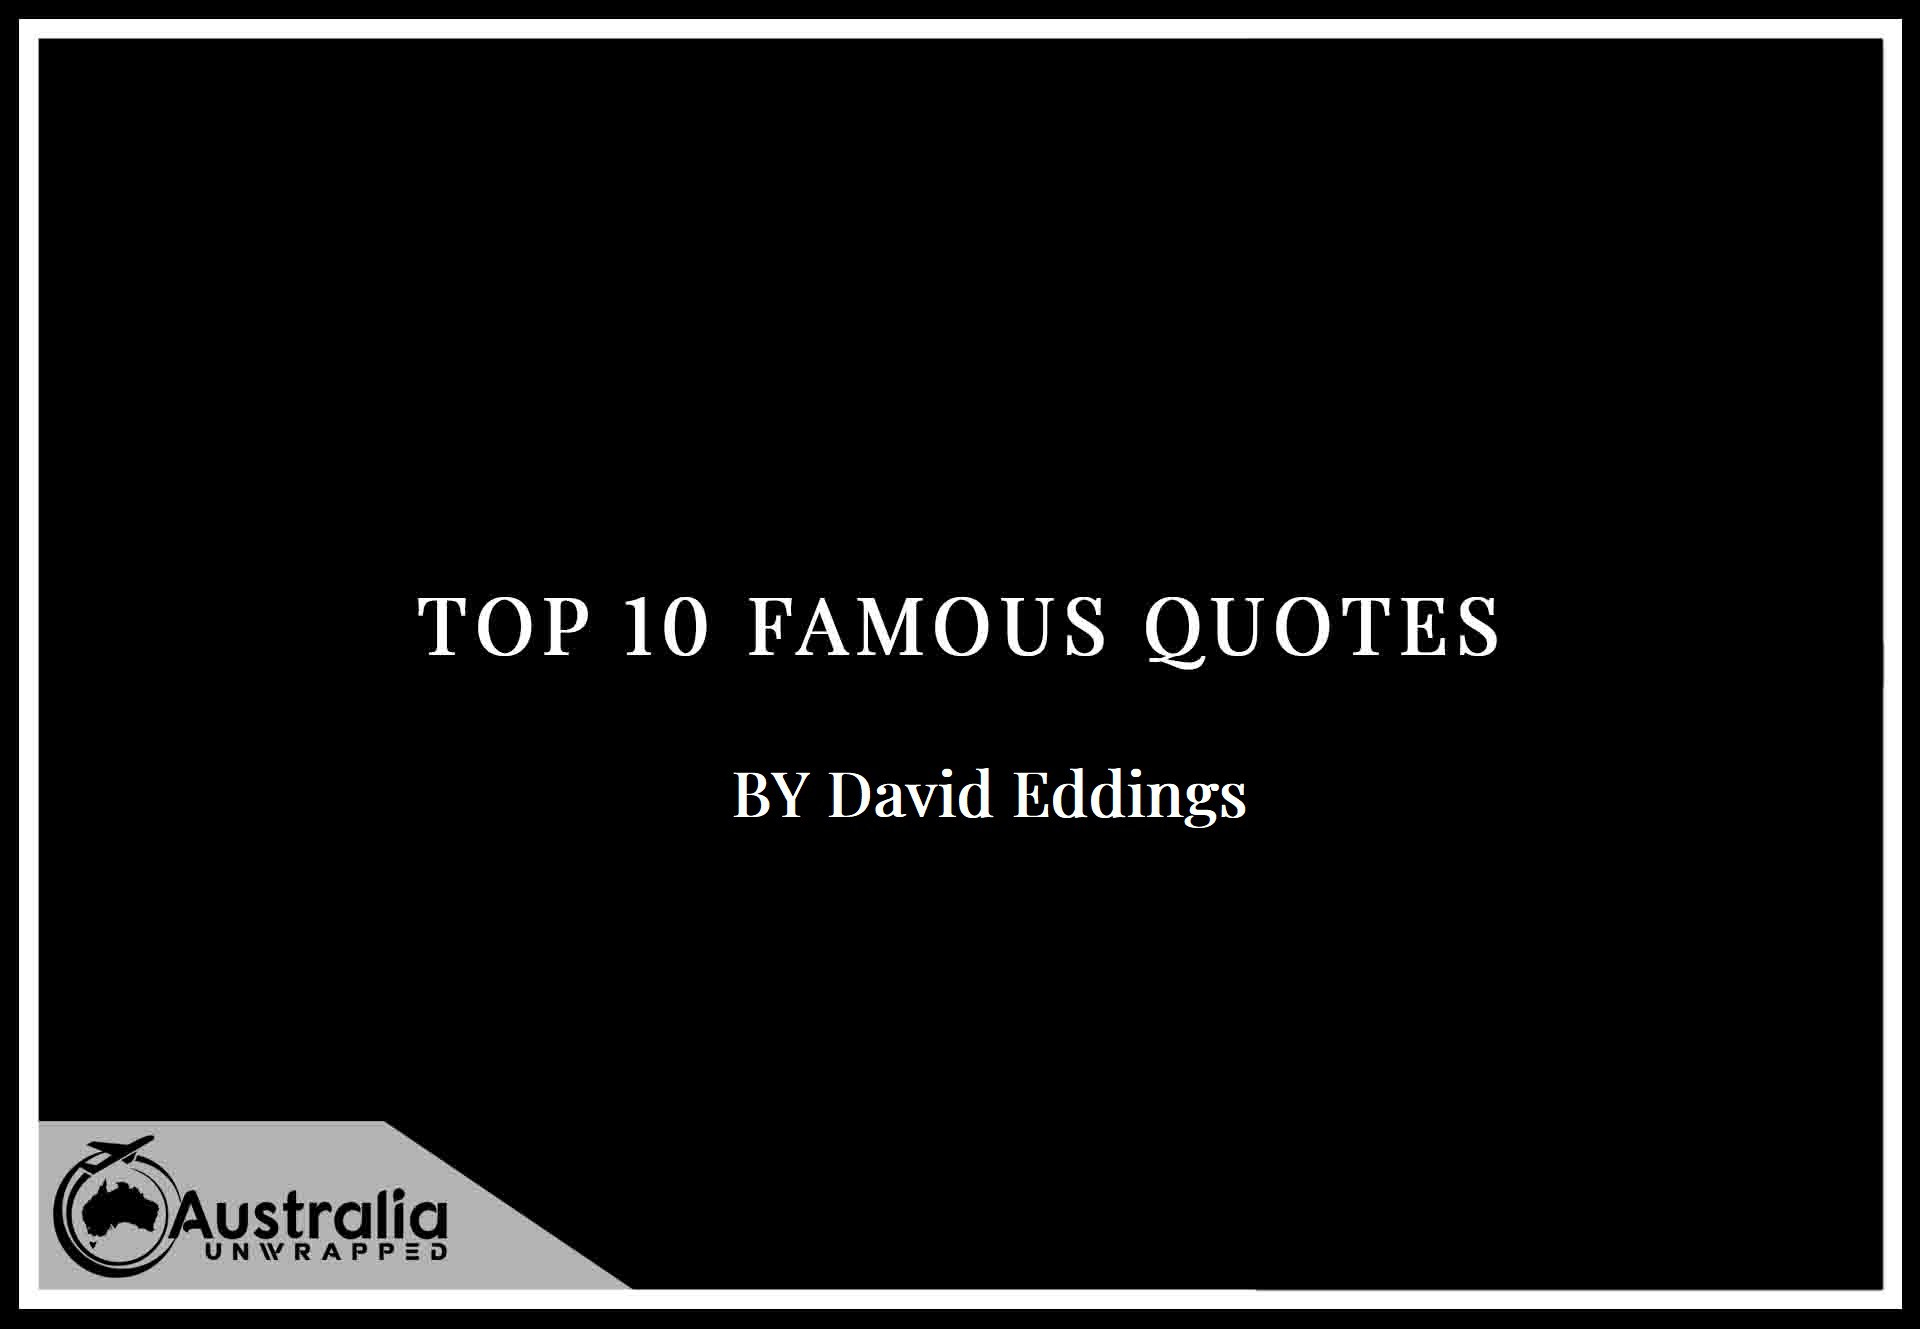 Top 10 Famous Quotes by Author David Eddings